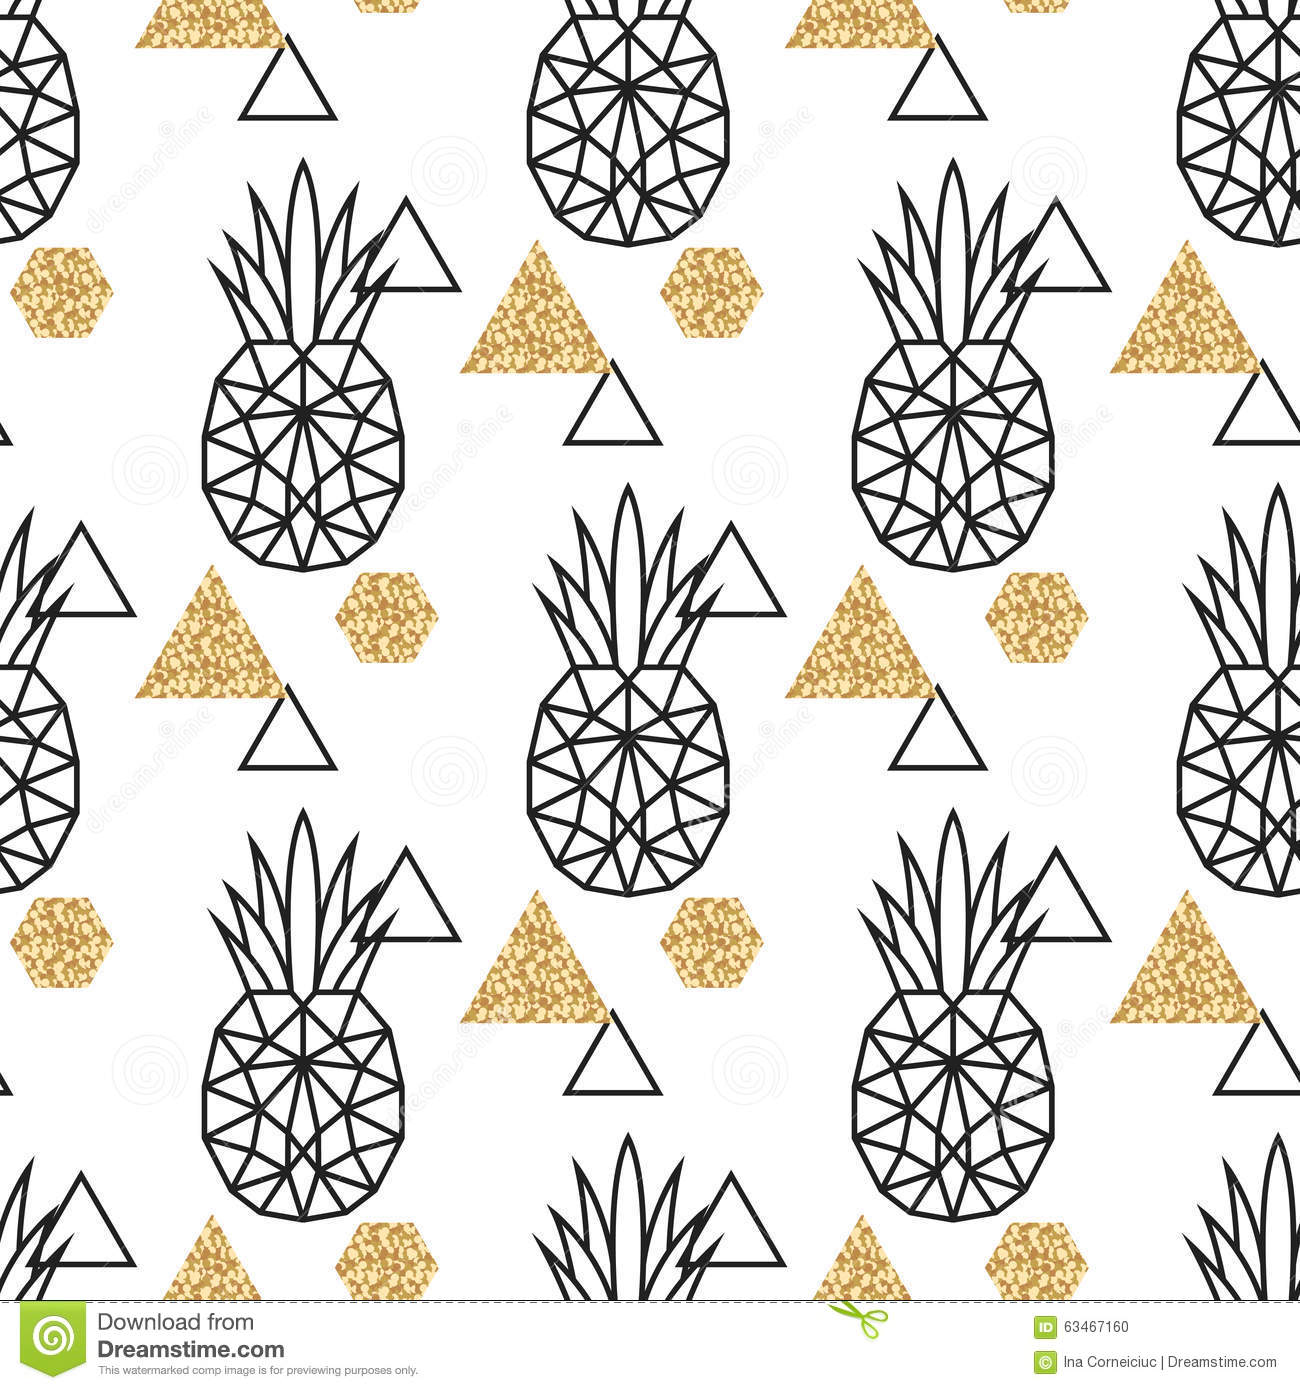 ... background for print, textile fabric, invitation card and wall decor